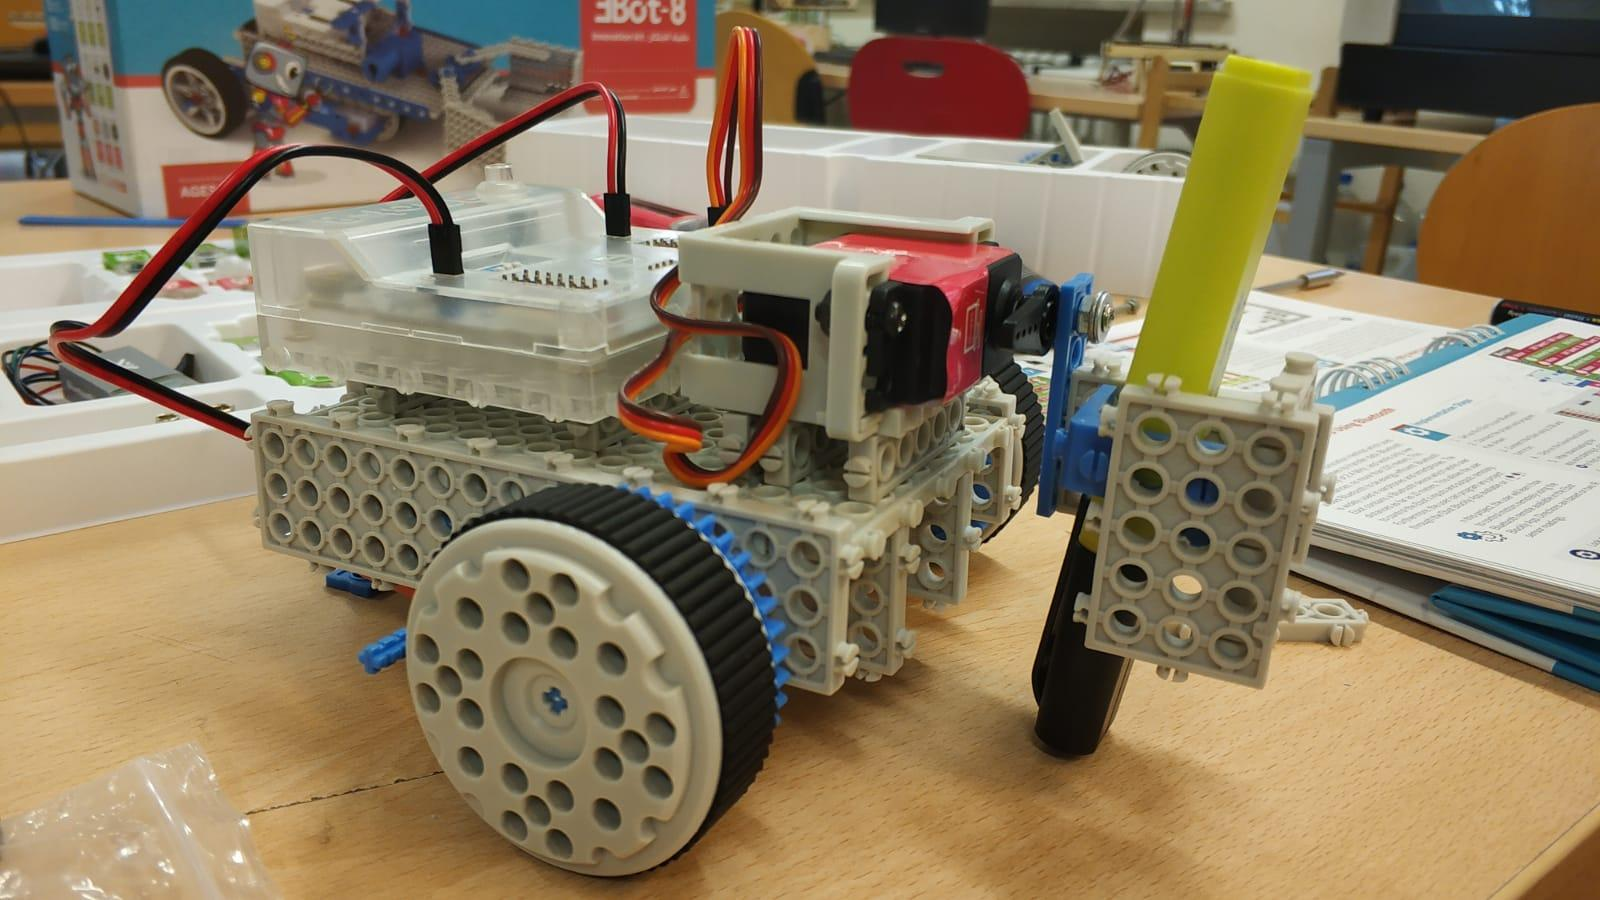 EBot is a DIY ecosystem developed for students, kids, artists, and robotics enthusiasts to learn, explore and build working prototypes through experiments and games.